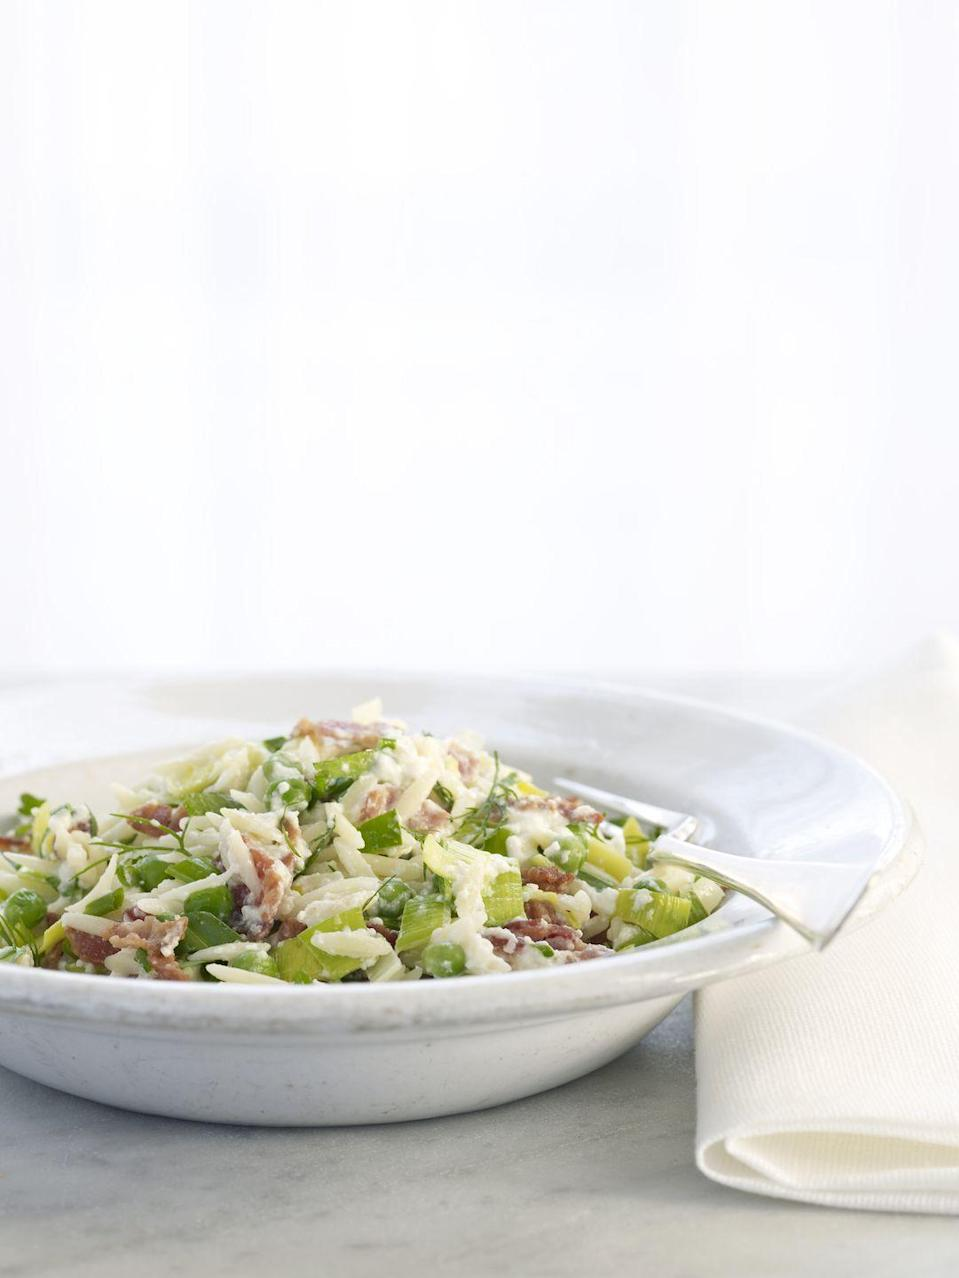 """<p>Make this adaptable Italian dish using pasta, bacon, and herbs of your choice. Some fresh summer herbs to consider: chervil, chives, and parsley.</p><p><strong><a href=""""https://www.countryliving.com/food-drinks/recipes/a2282/ricotta-orzo-clv/"""" rel=""""nofollow noopener"""" target=""""_blank"""" data-ylk=""""slk:Get the recipe."""" class=""""link rapid-noclick-resp"""">Get the recipe.</a></strong></p>"""